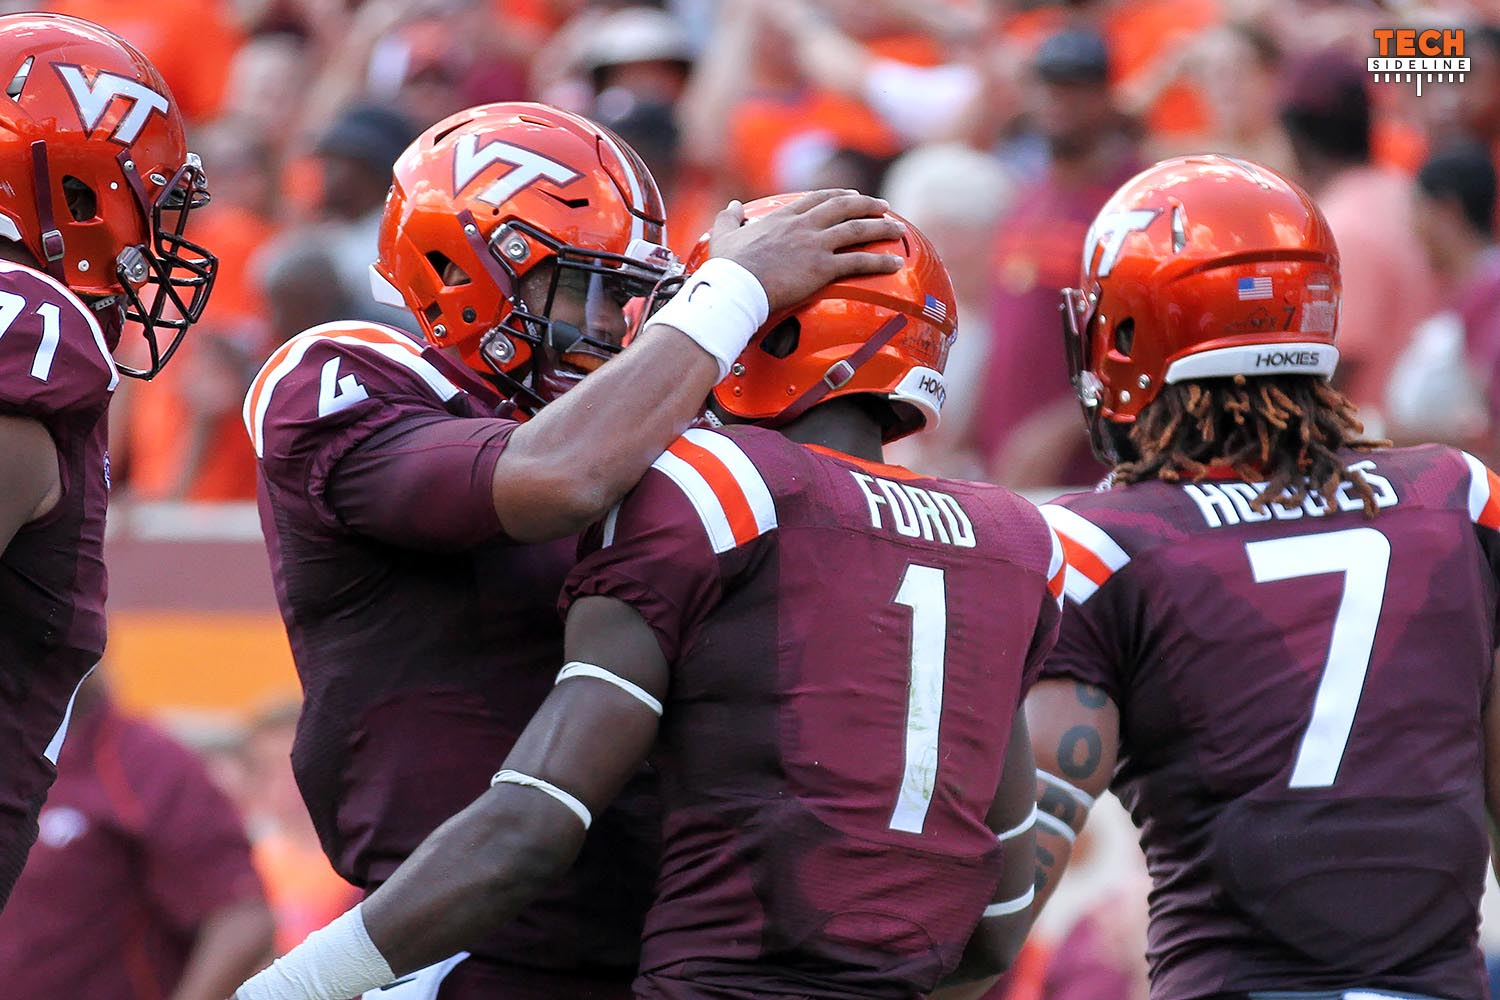 Virginia Tech QB Jerod Evans Declares For NFL Draft